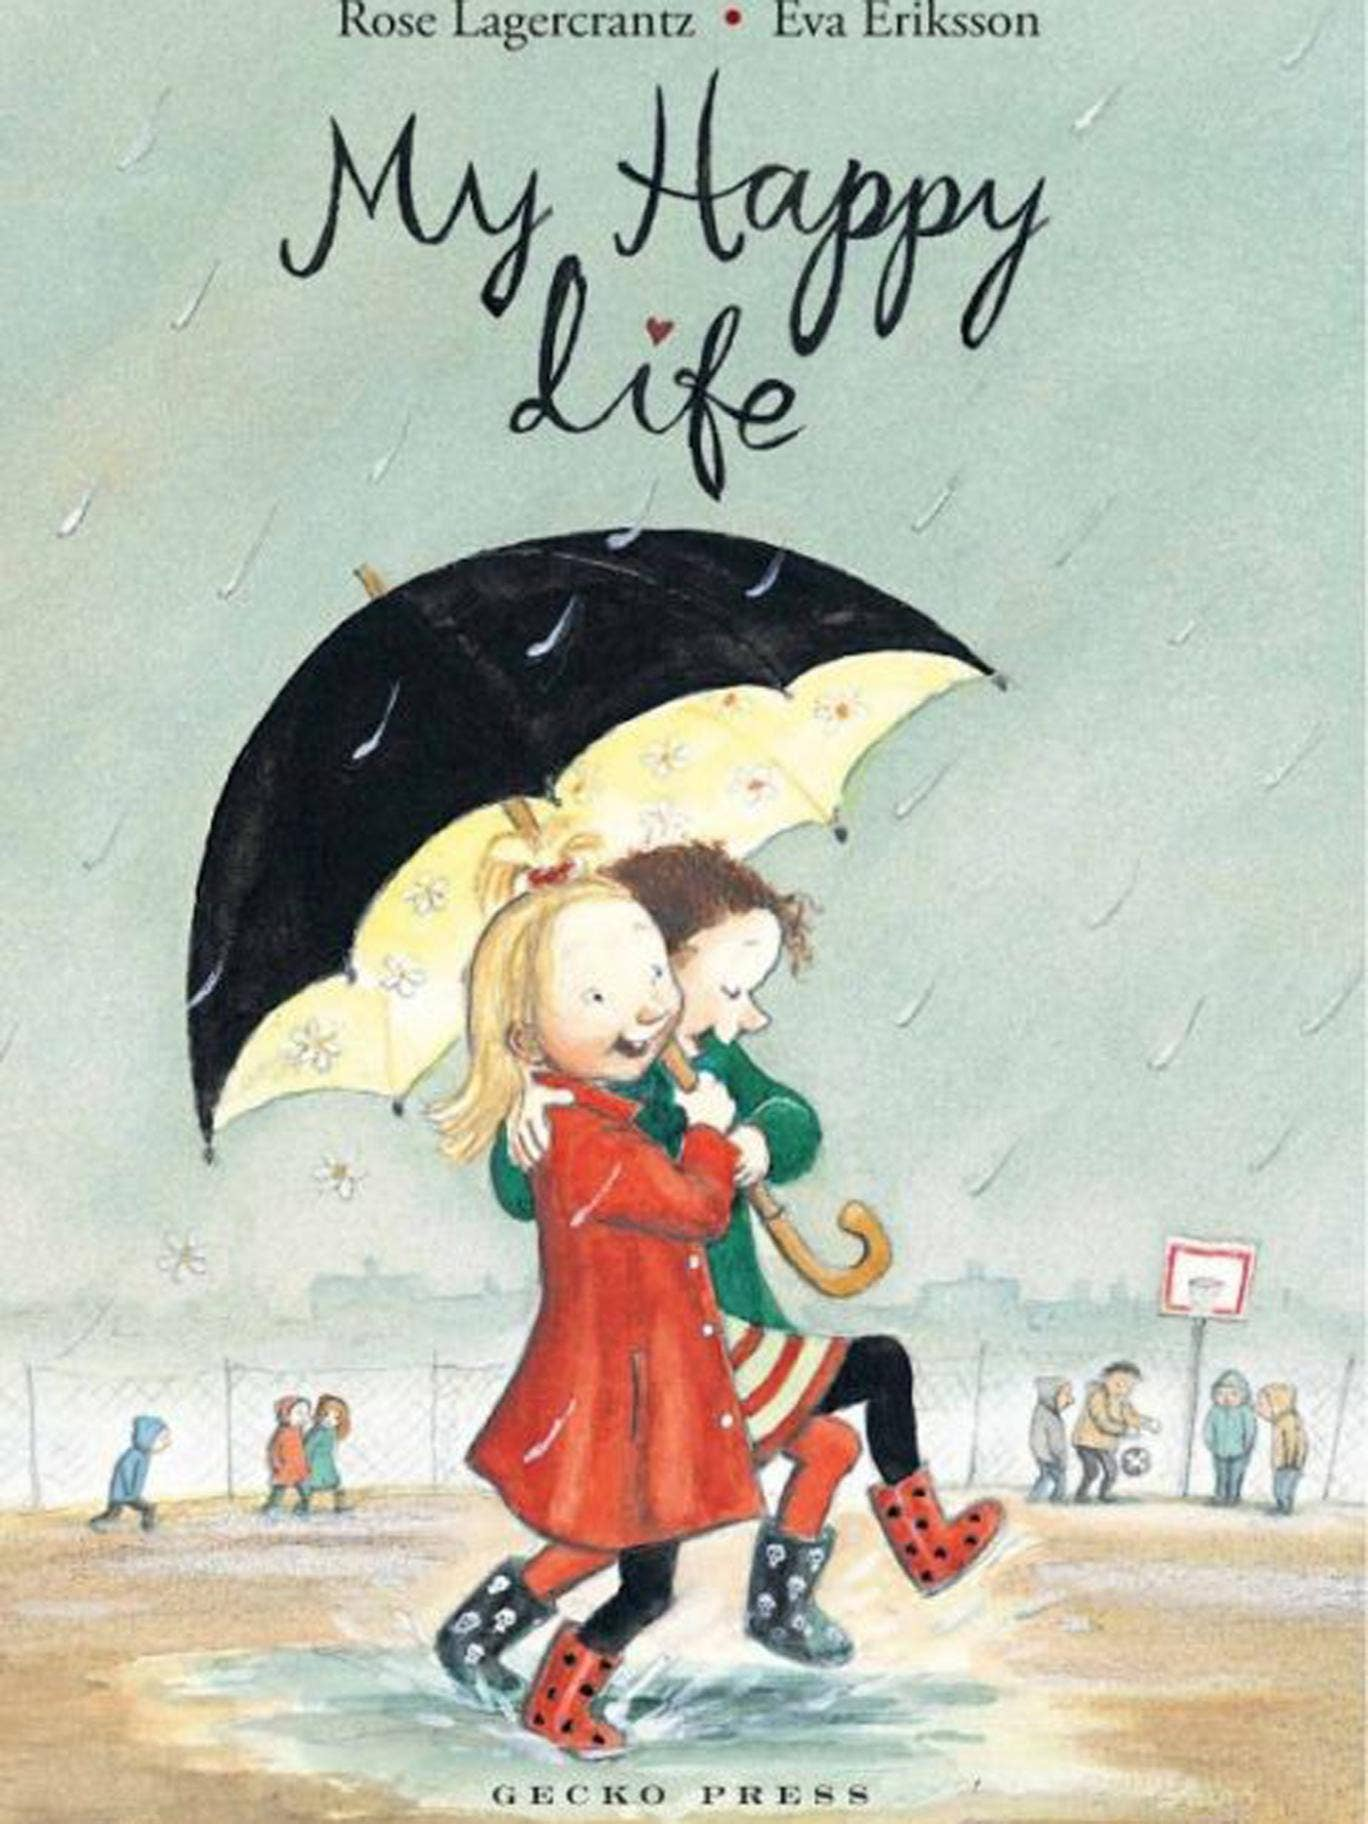 From spy clubs to enchantments: Cover of 'My Happy Life'